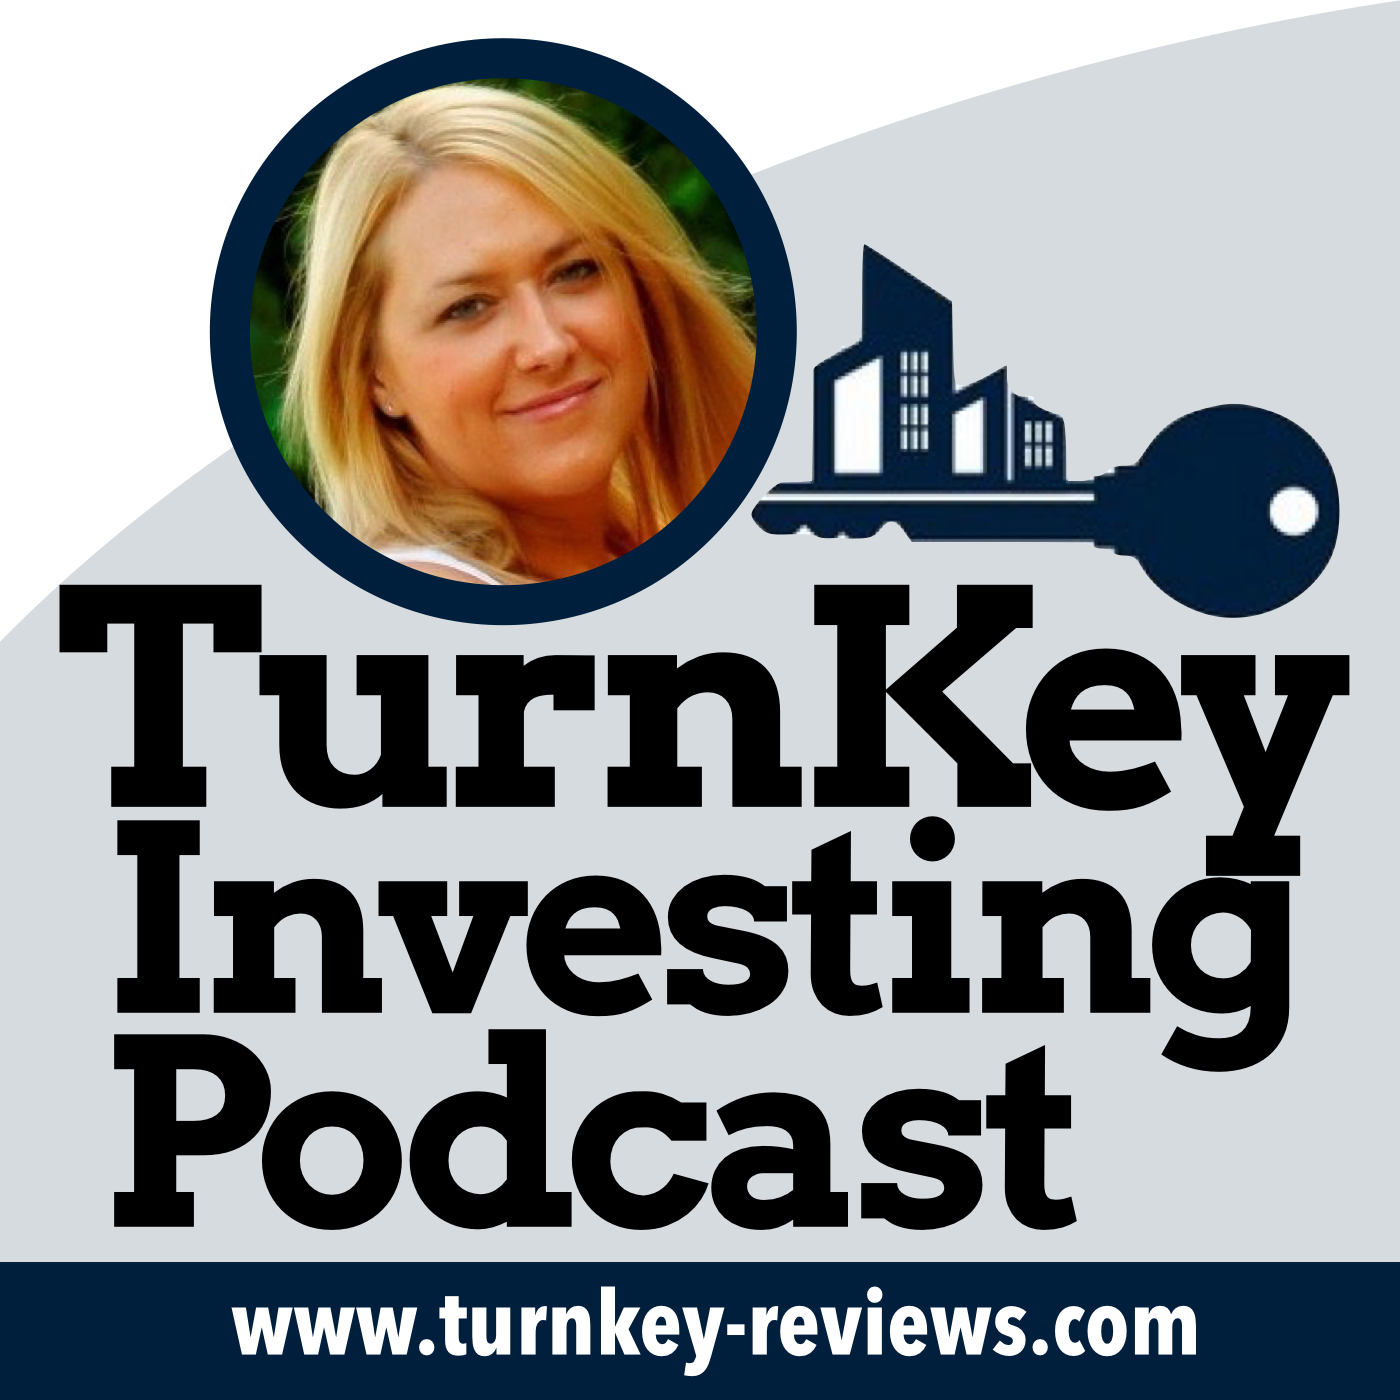 The TurnKey Investing Podcast